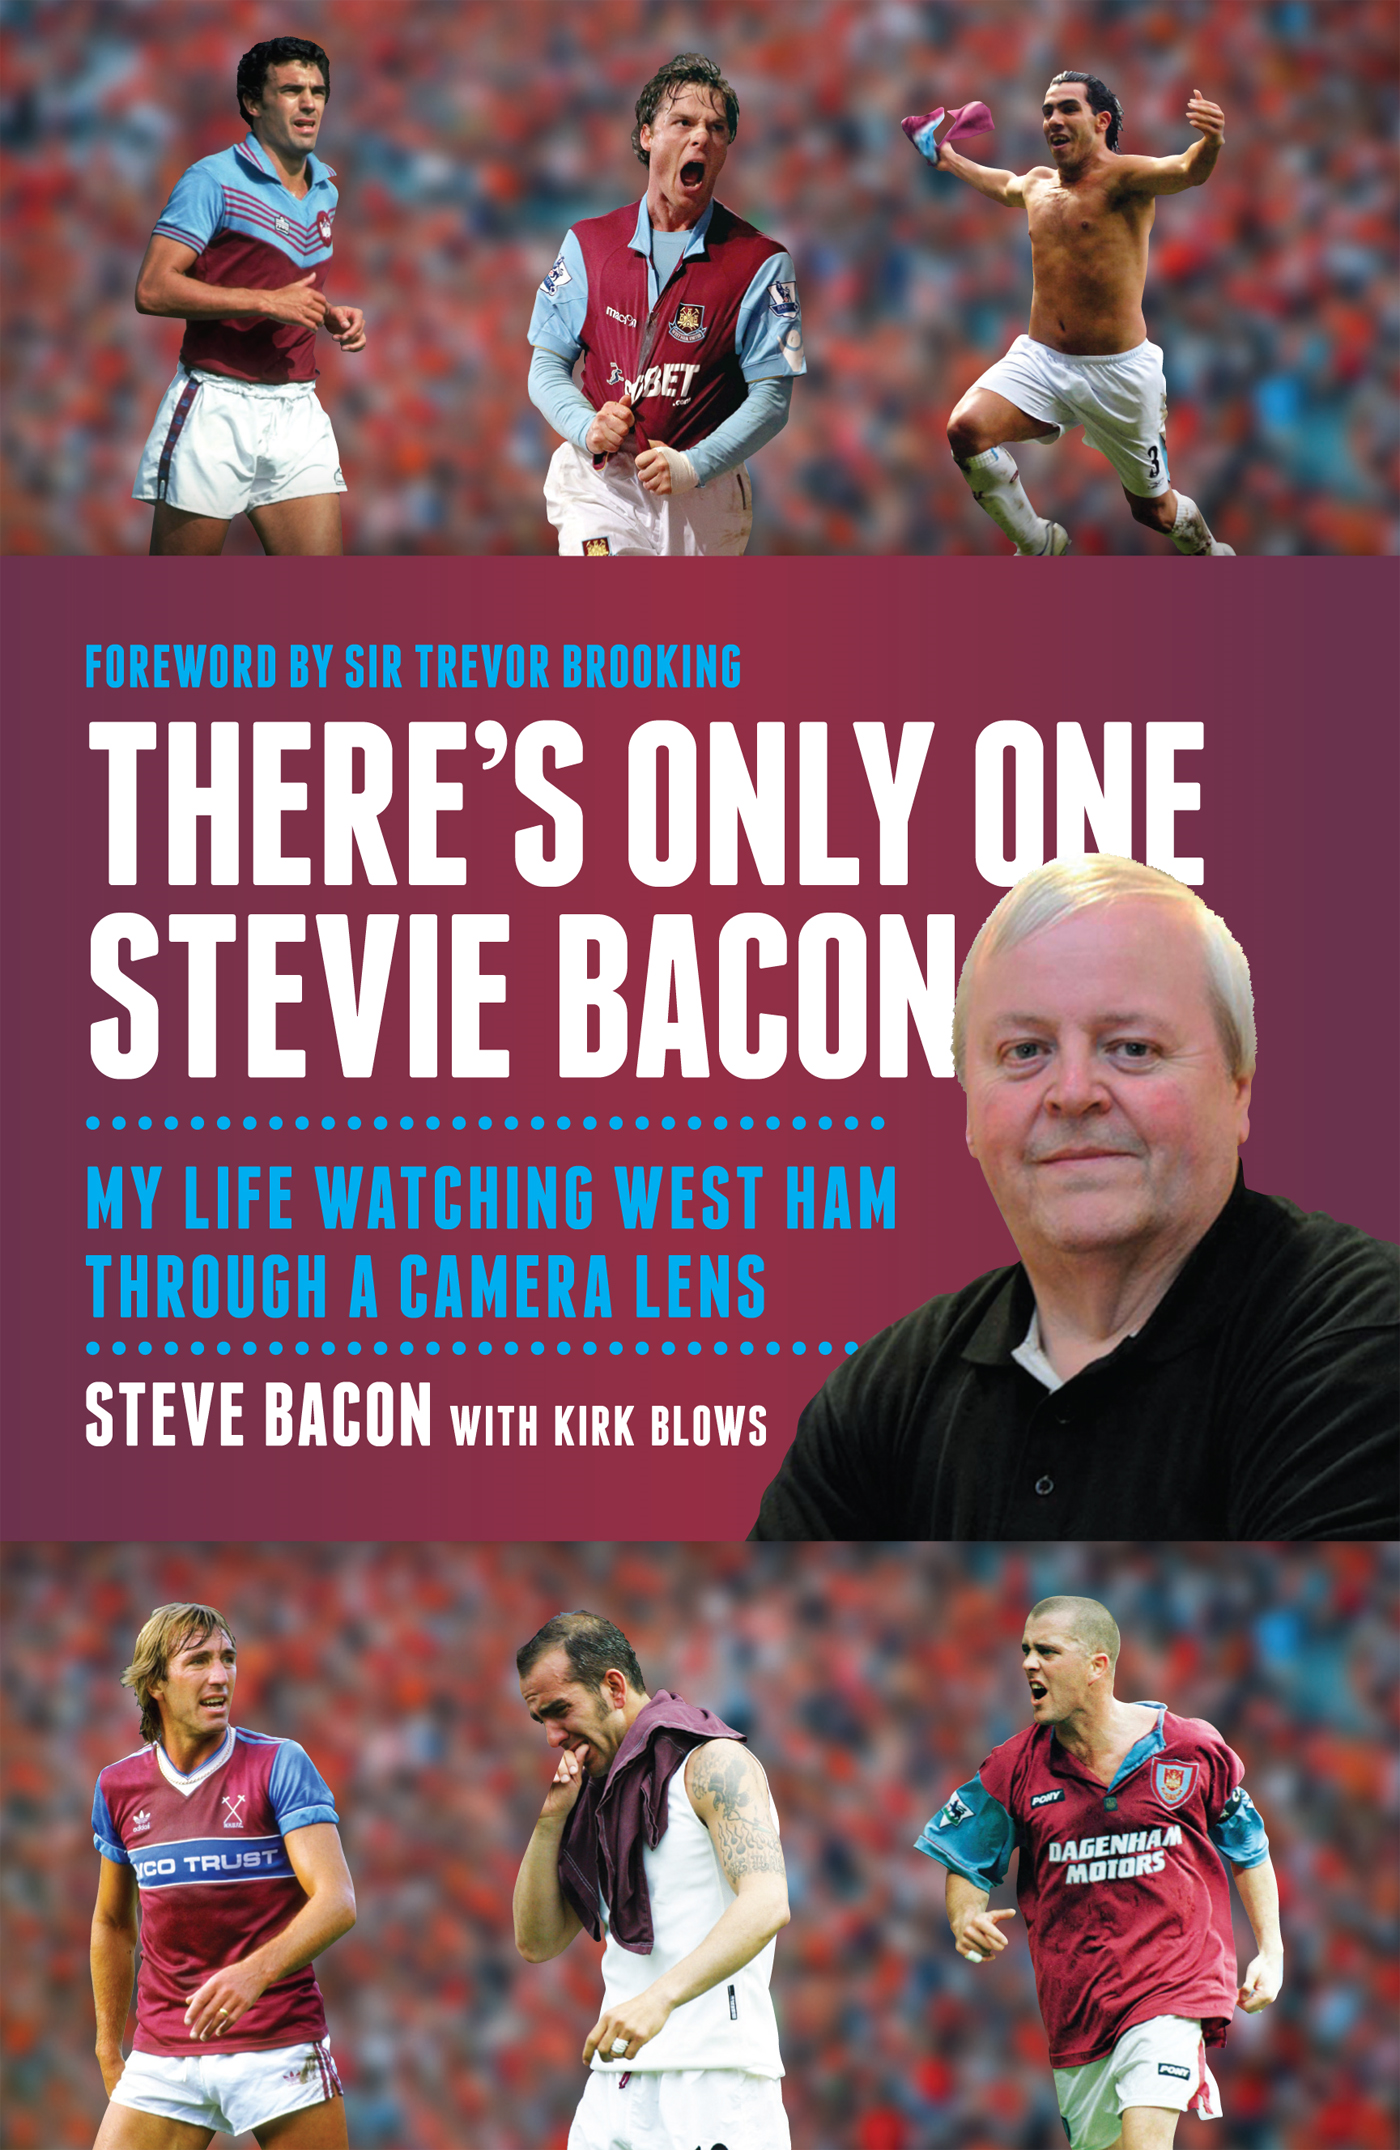 There's Only One Stevie Bacon